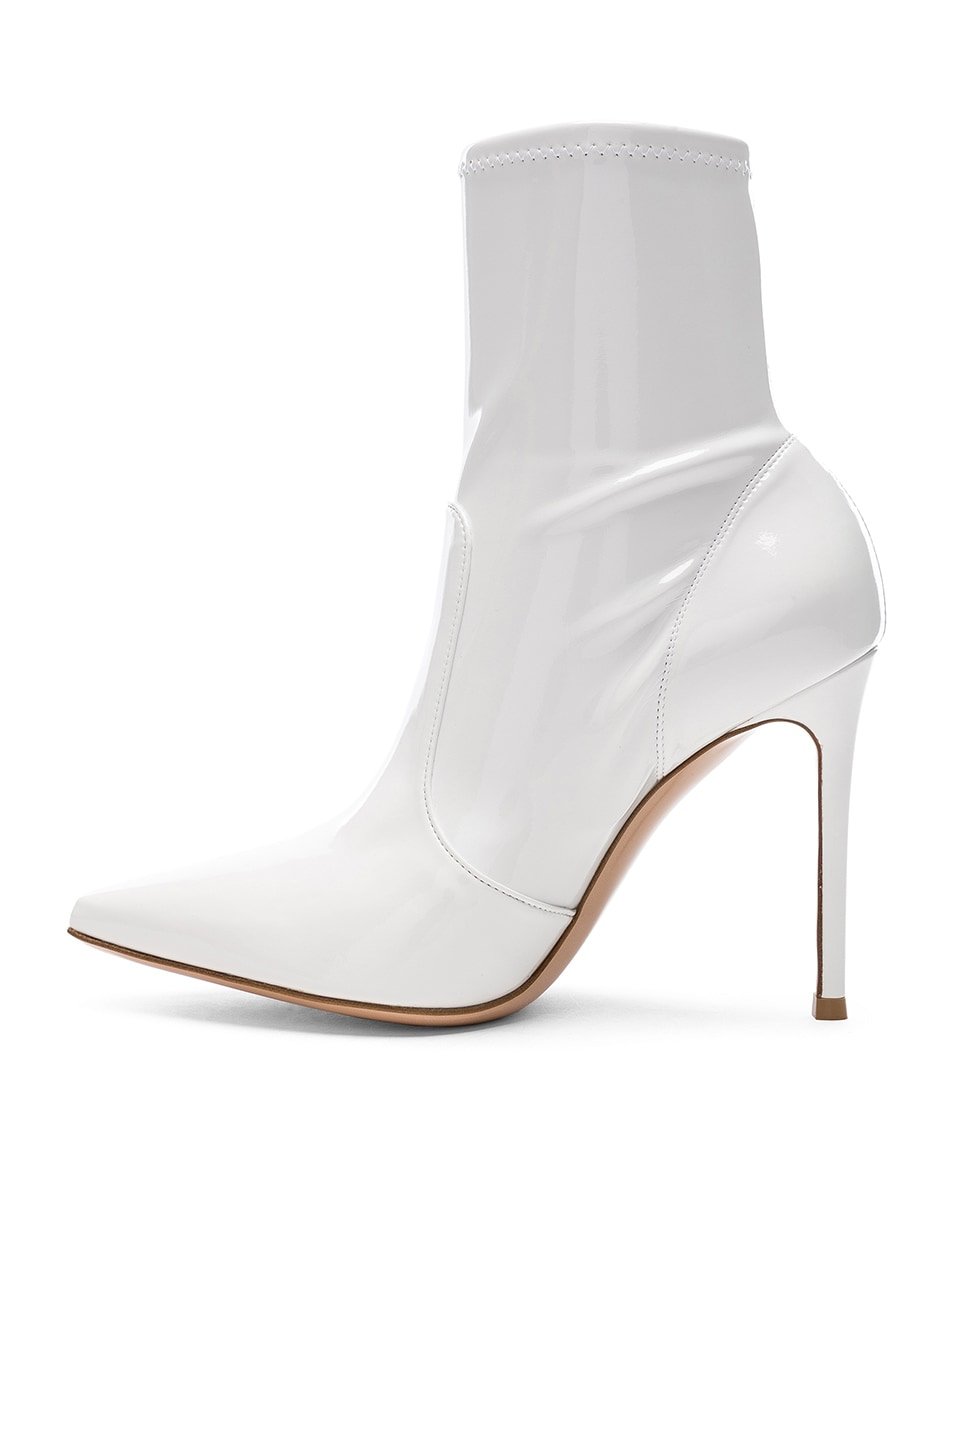 Image 5 of Gianvito Rossi Vinyl Imogen Ankle Boots in White